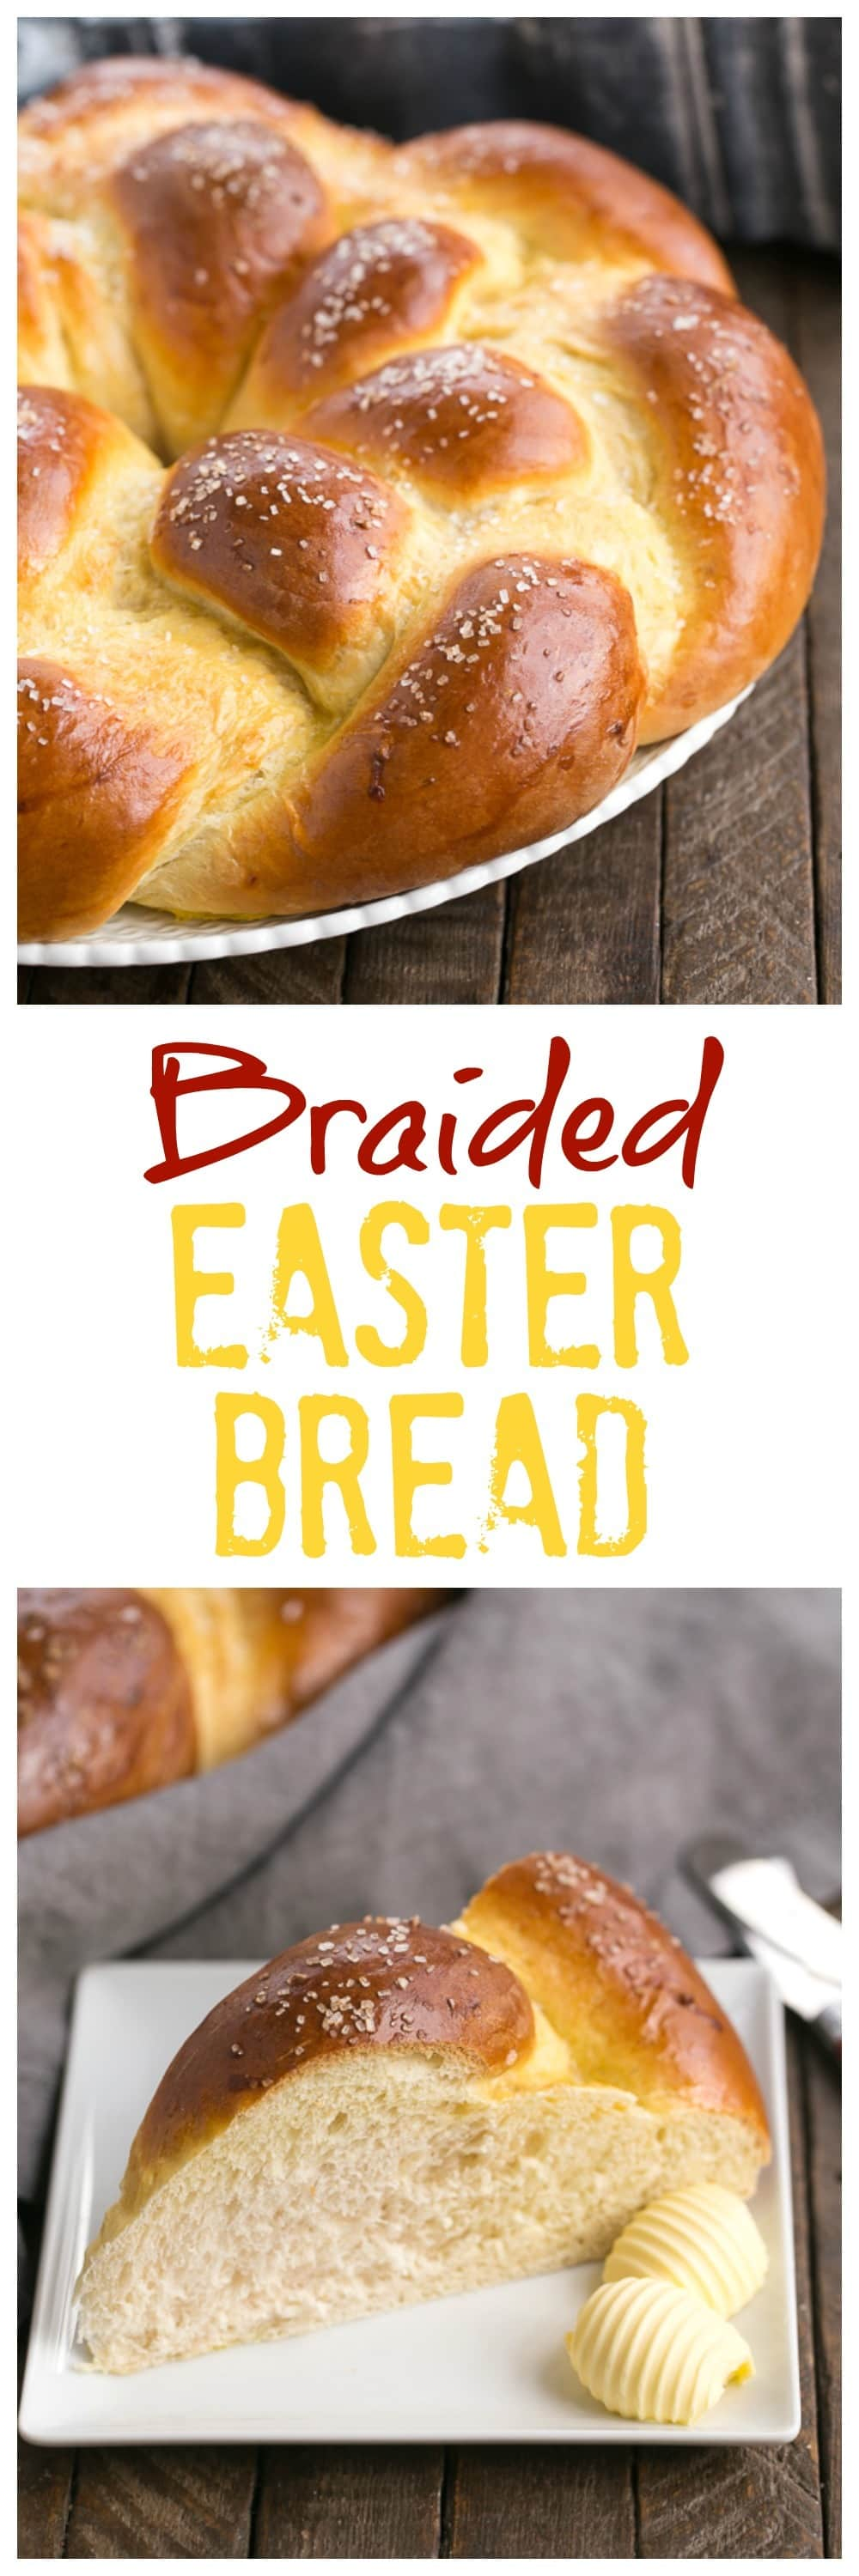 Braided Easter Bread is tender, slightly sweet, vanilla scented bread that is perfect to serve at a holiday brunch. This braided Easter bread recipe creates such a tender loaf of homemade egg bread, everyone will scramble for the last piece. #easter #recipe #bread